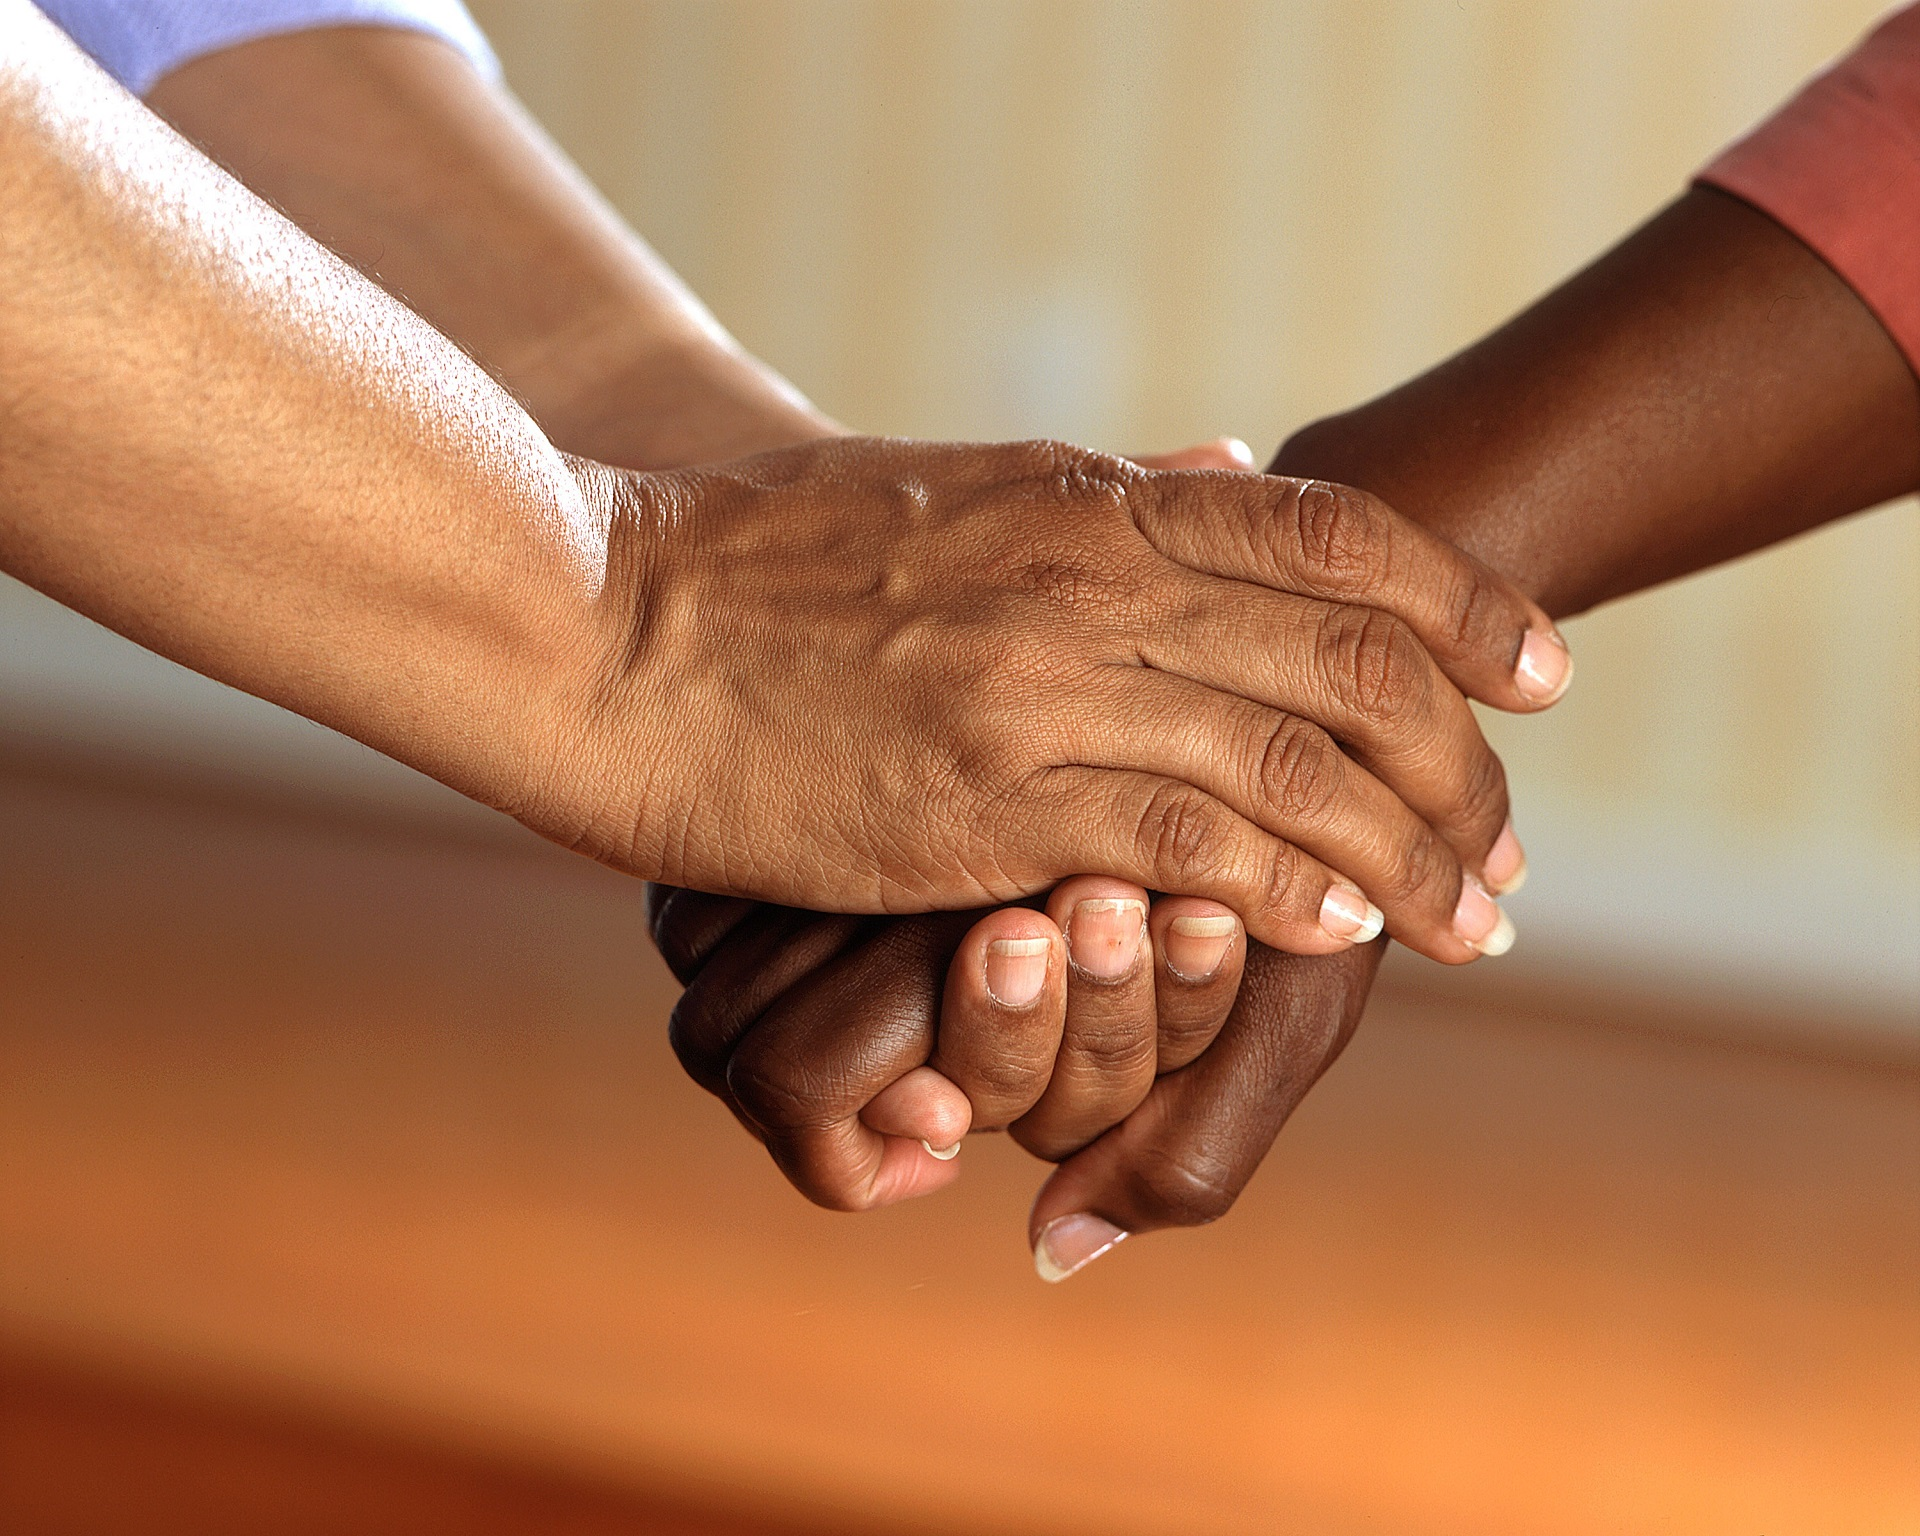 How to Encourage Compassion Towards People with HIV